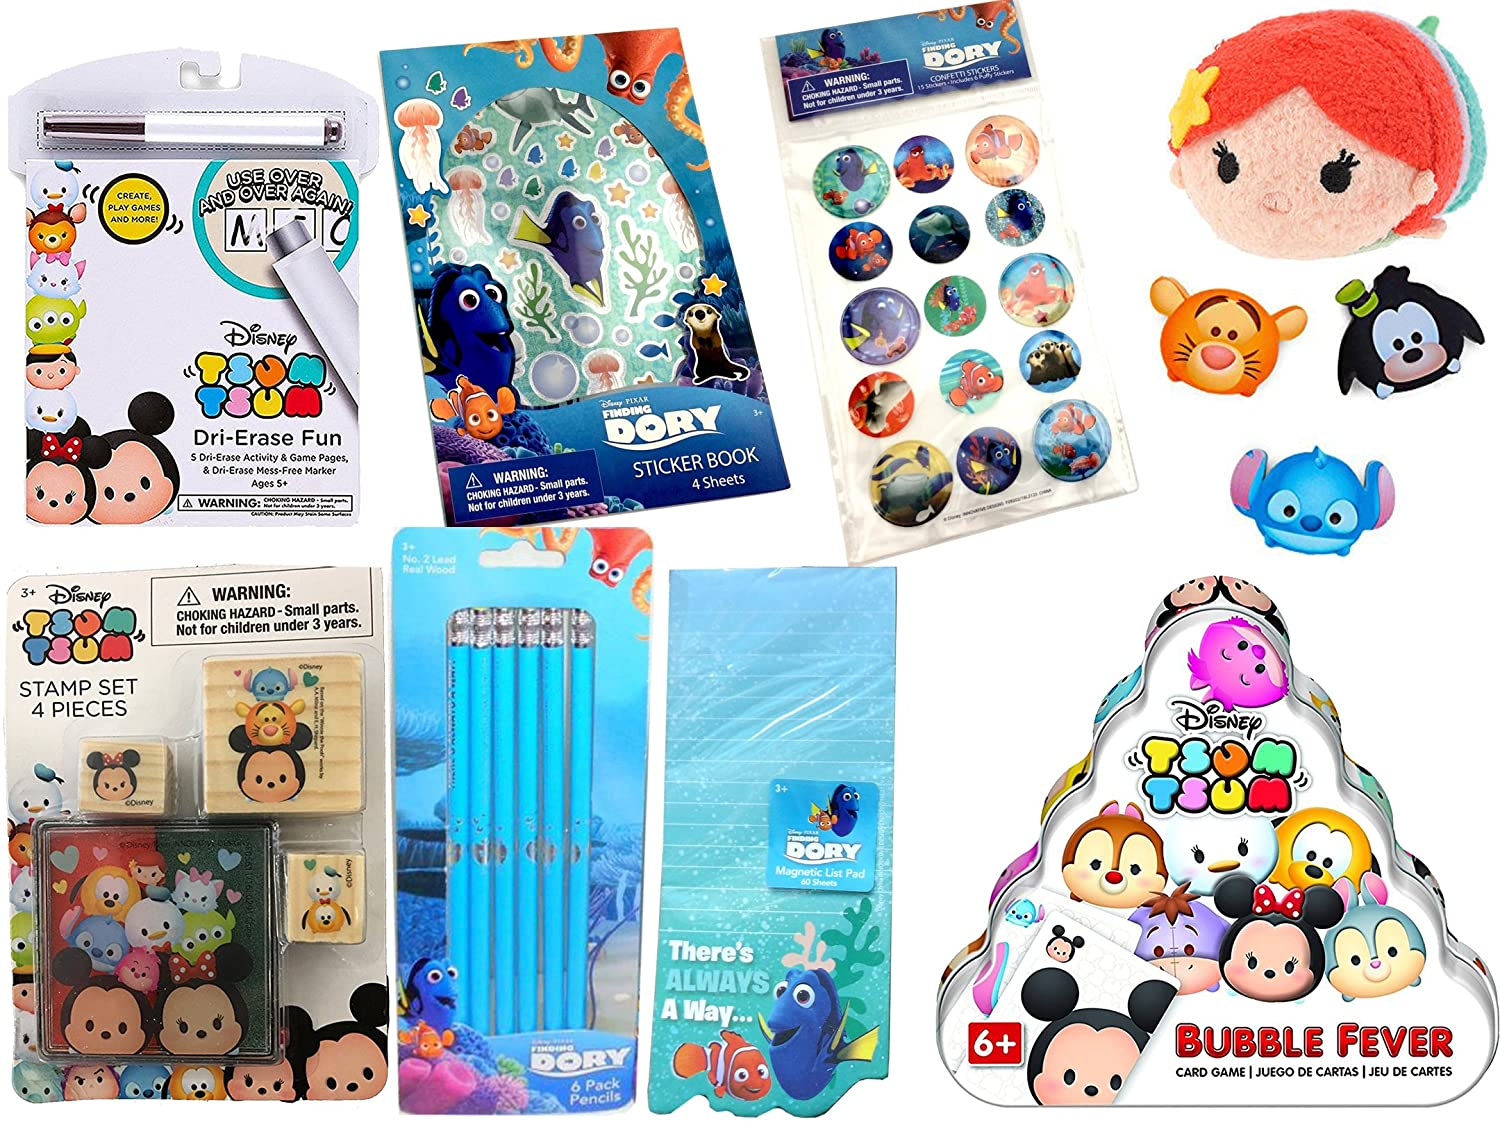 Ariel Little Mermaid Disney Tsum Tsum Collection Mini Plush Bubble Fever Card Game Finding Dory Pencils confetti Stickers Character Erasers WD AYB Activity Fun Pad